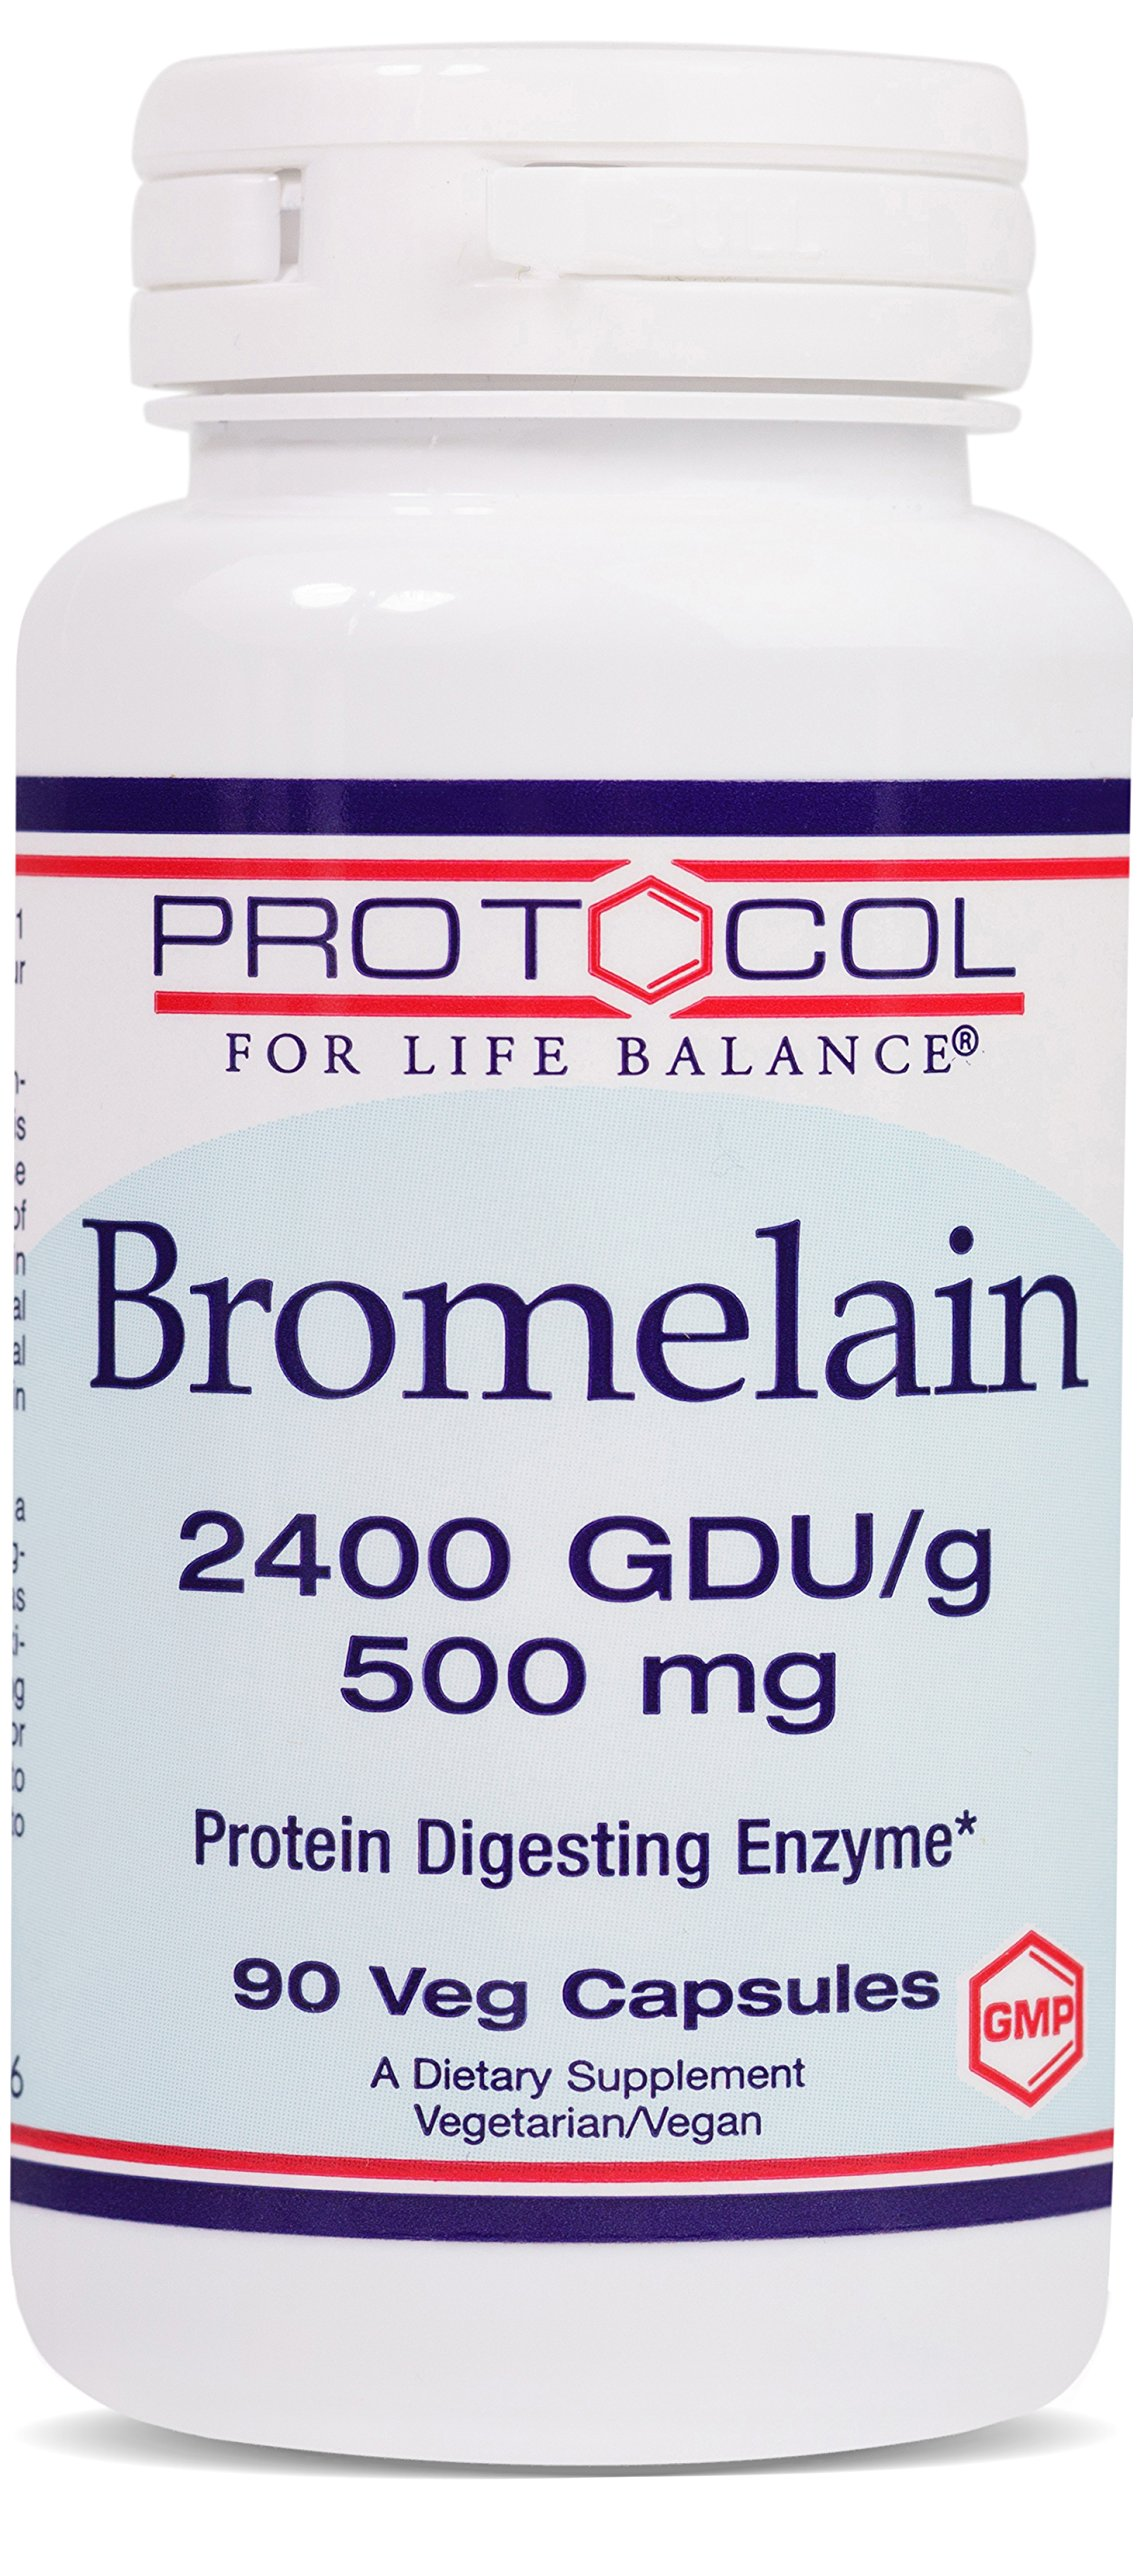 Protocol For Life Balance - Bromelain 2400 GDU/g 500 mg - Protein Digesting Enzyme, Supports Healthy Digestion, Nutrient Absorption, Reduce Inflammation, Gas & Stomach Pain Relief - 90 Veg Capsules